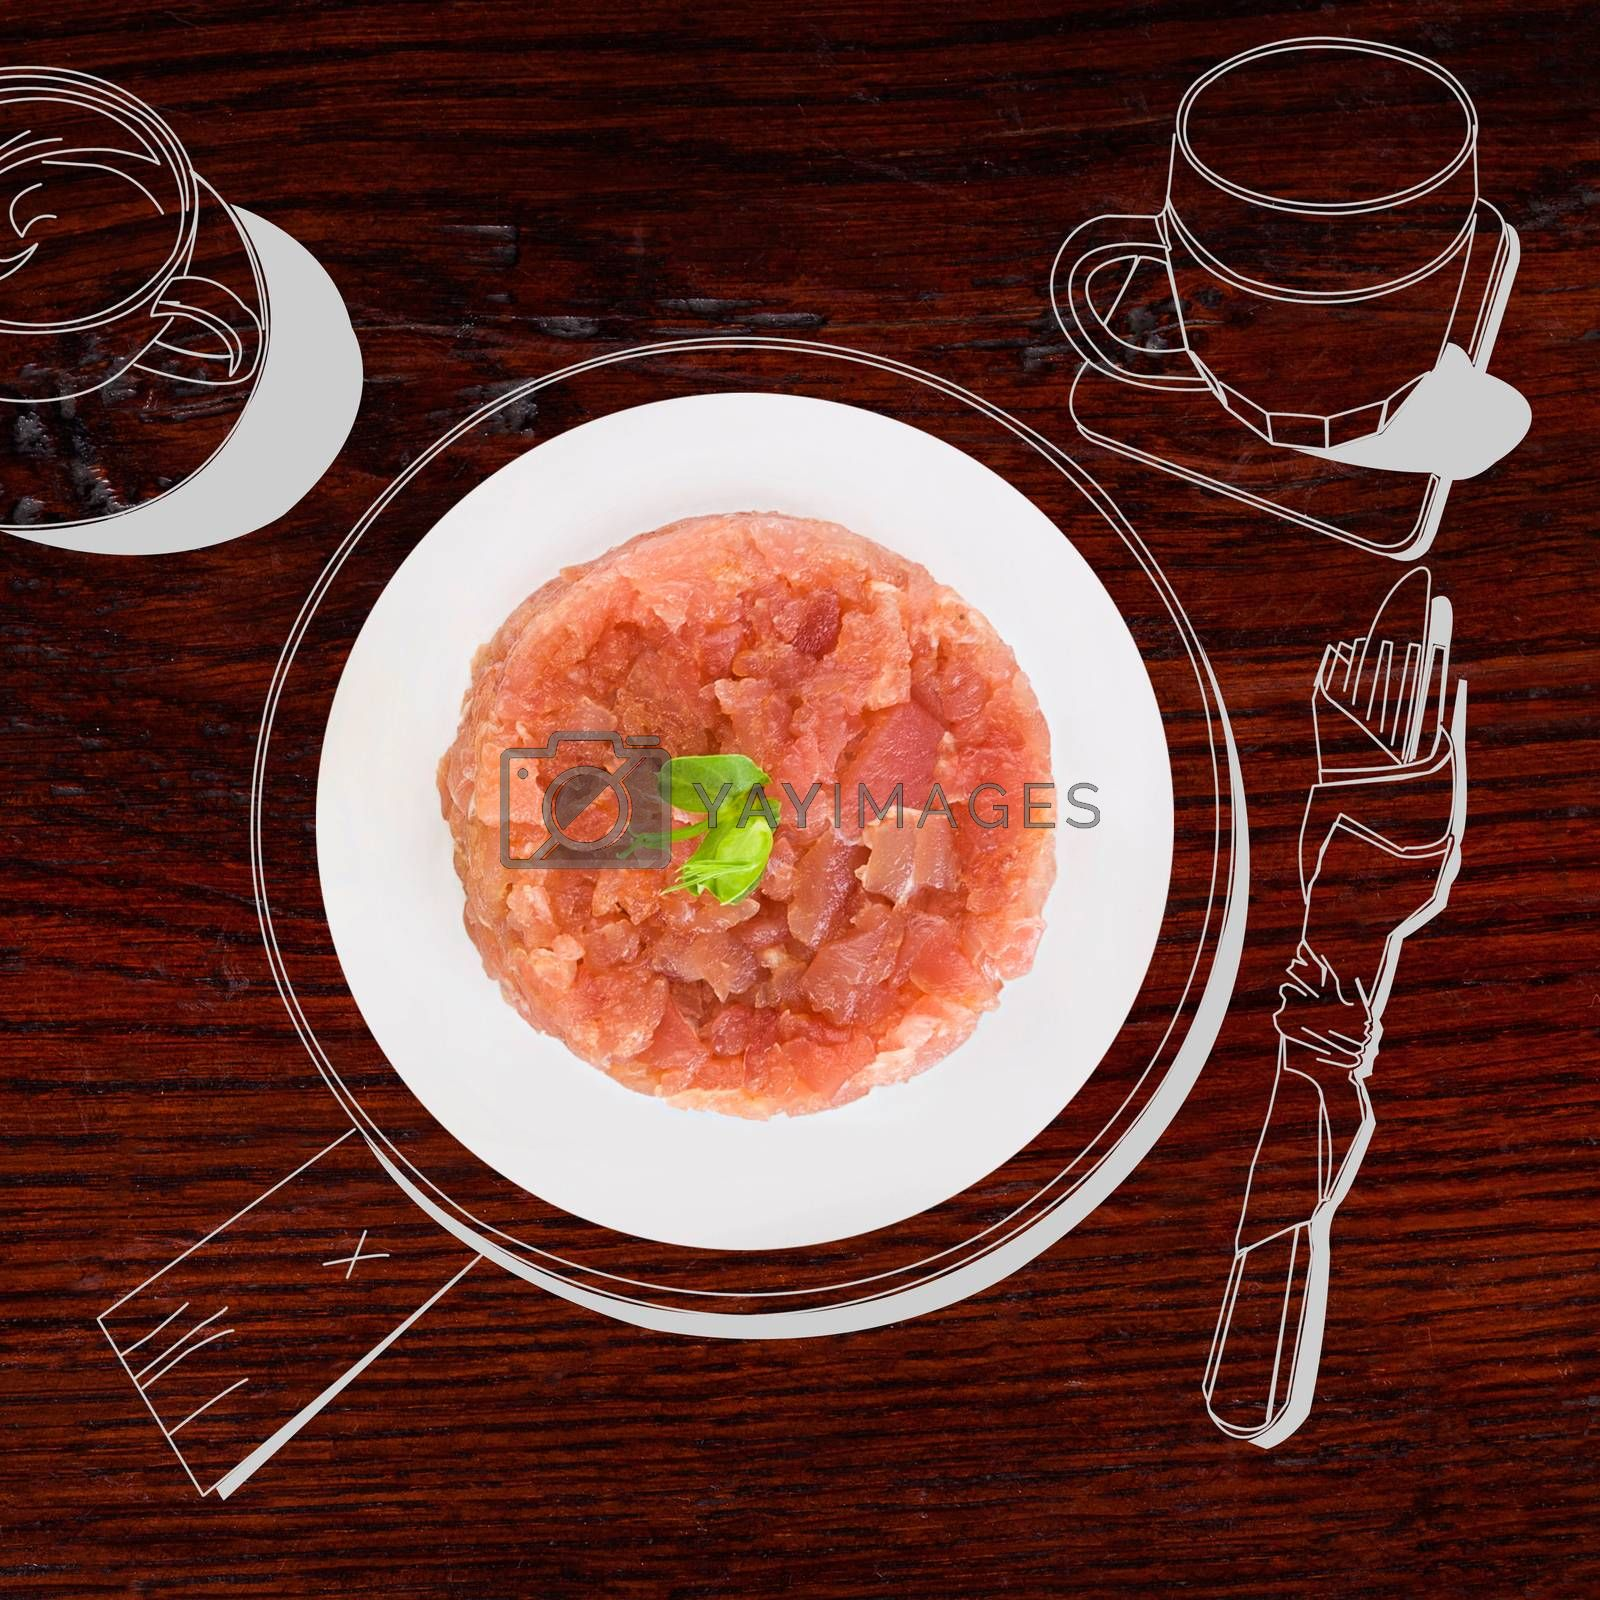 Delicious salmon tartare. Fine dining, exquisite luxurious gastronomy background.